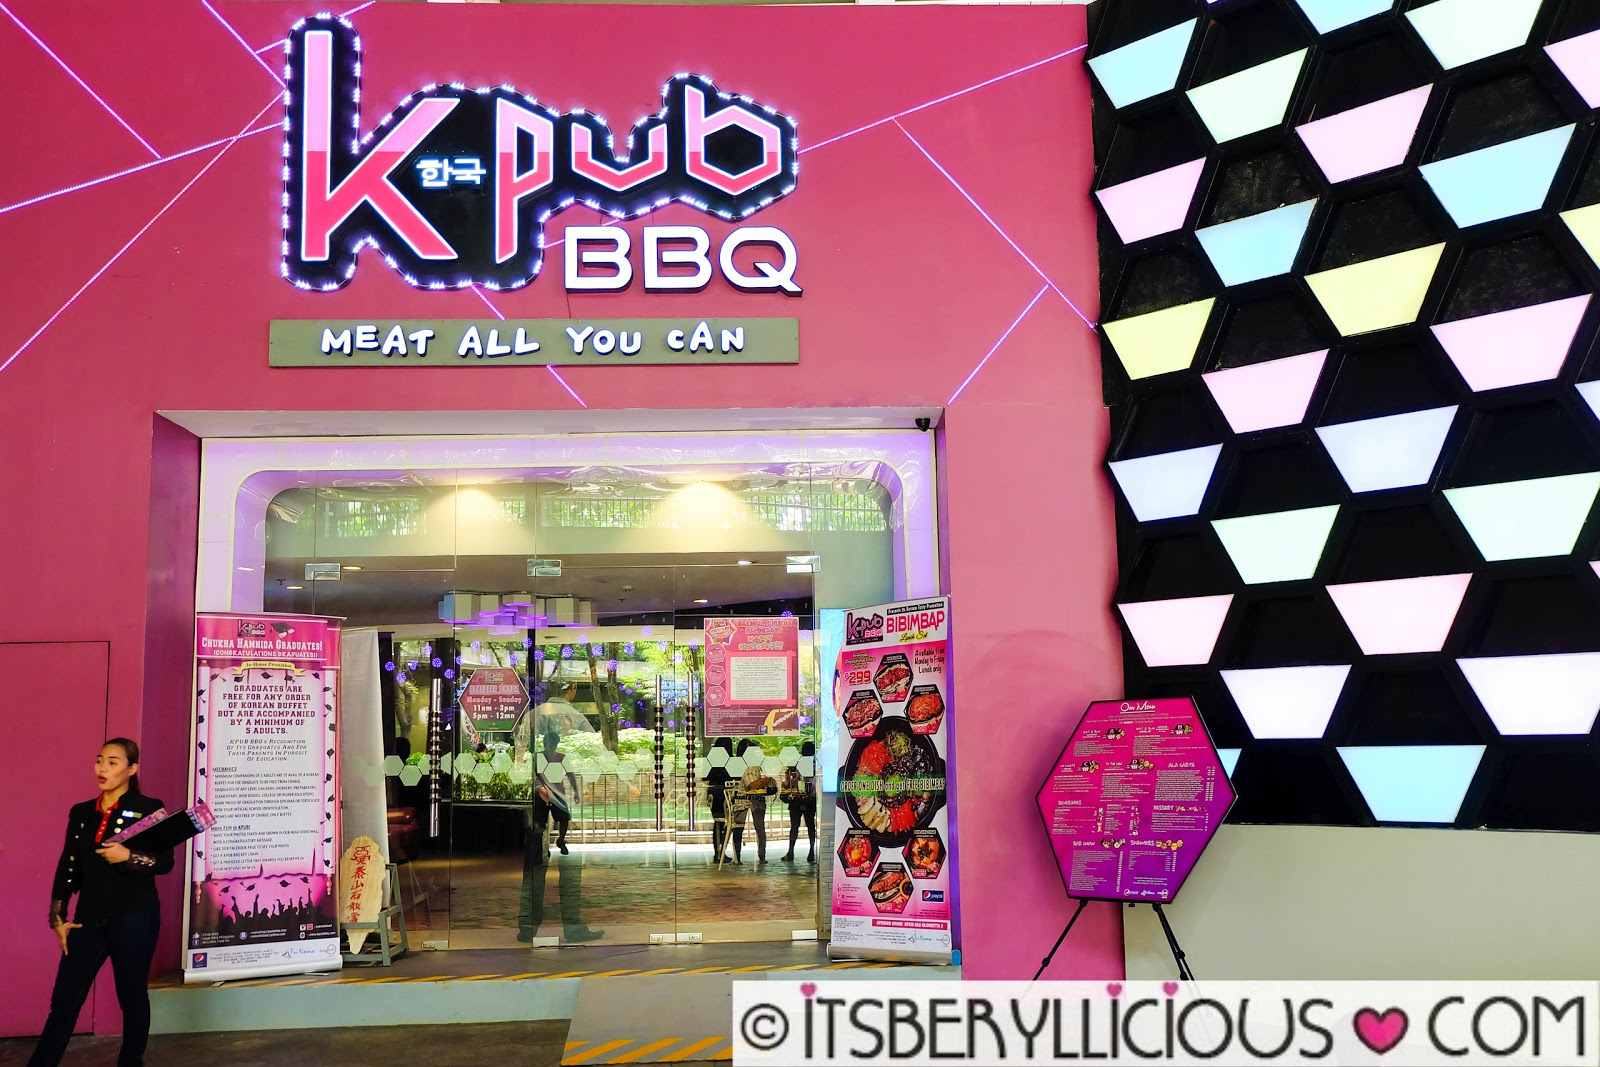 KPub BBQ Meat All You Can- Bibimbap Lunch Set Promo for as